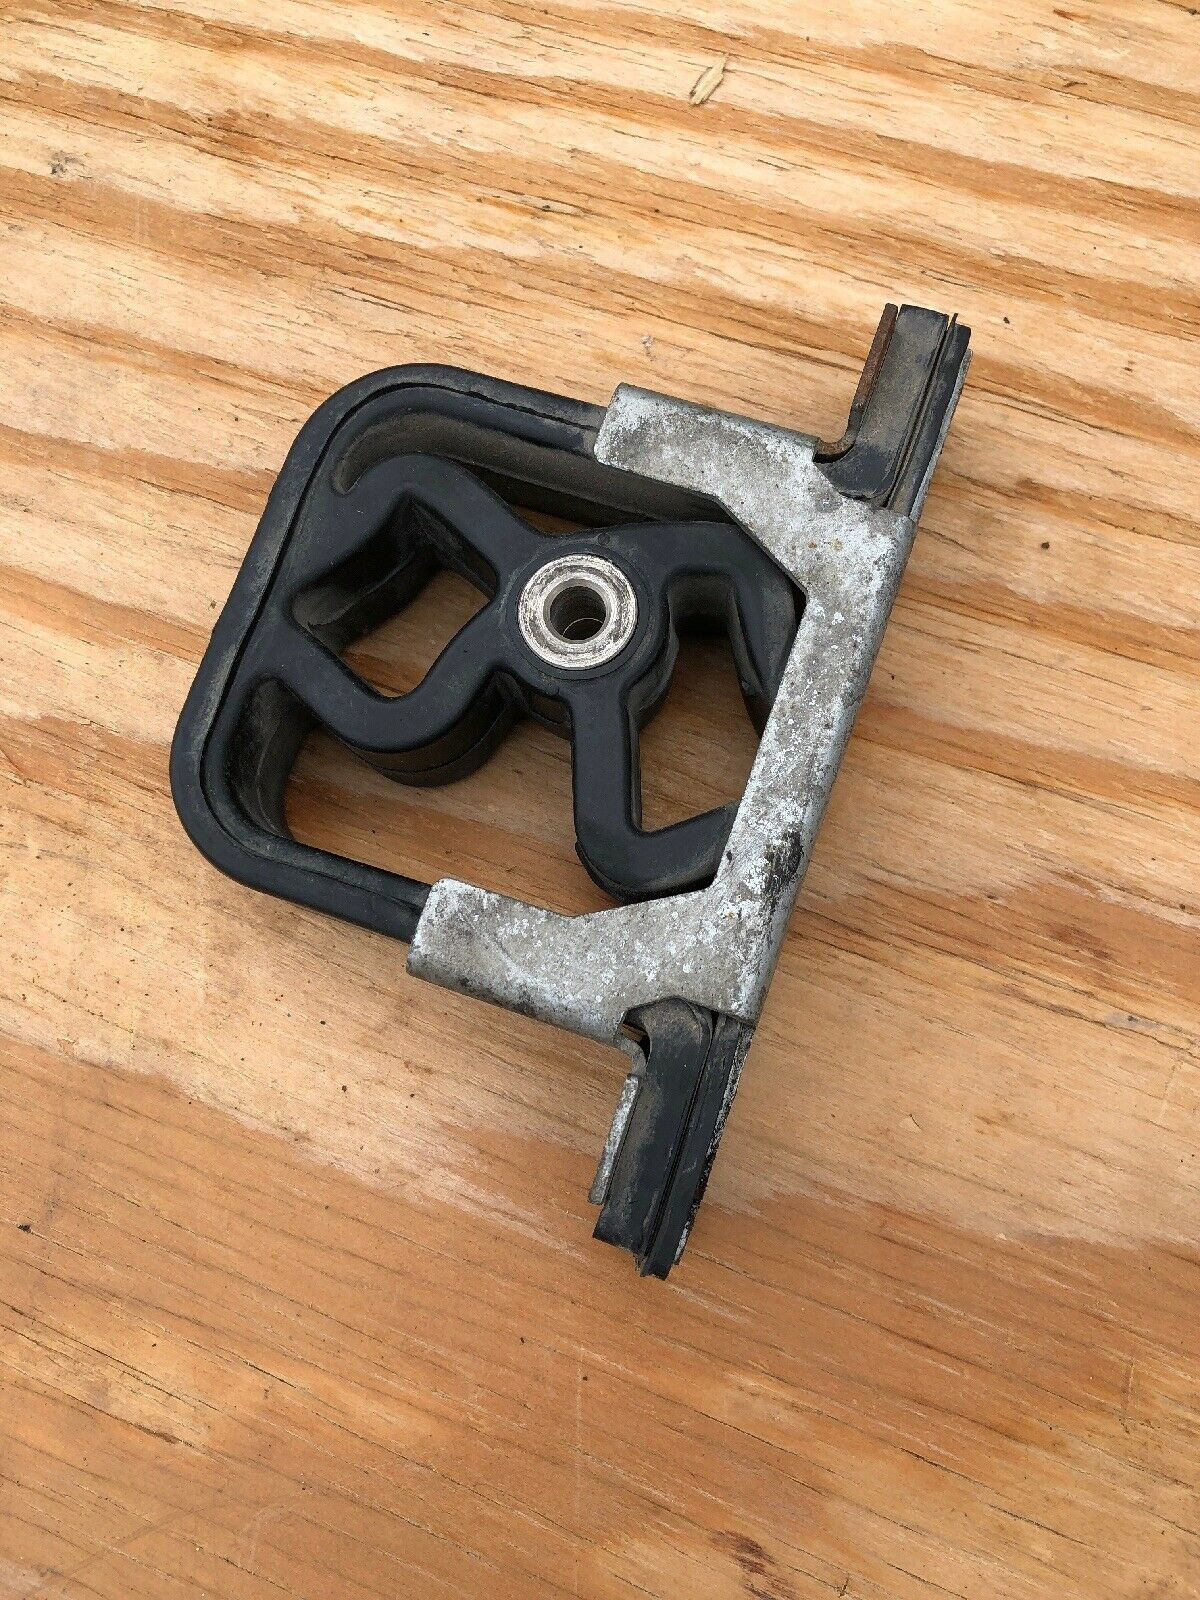 #18 21 1 105 638 NEW EXHAUST SYSTEM HANGER 68-95 525, M3, 2002 BMW